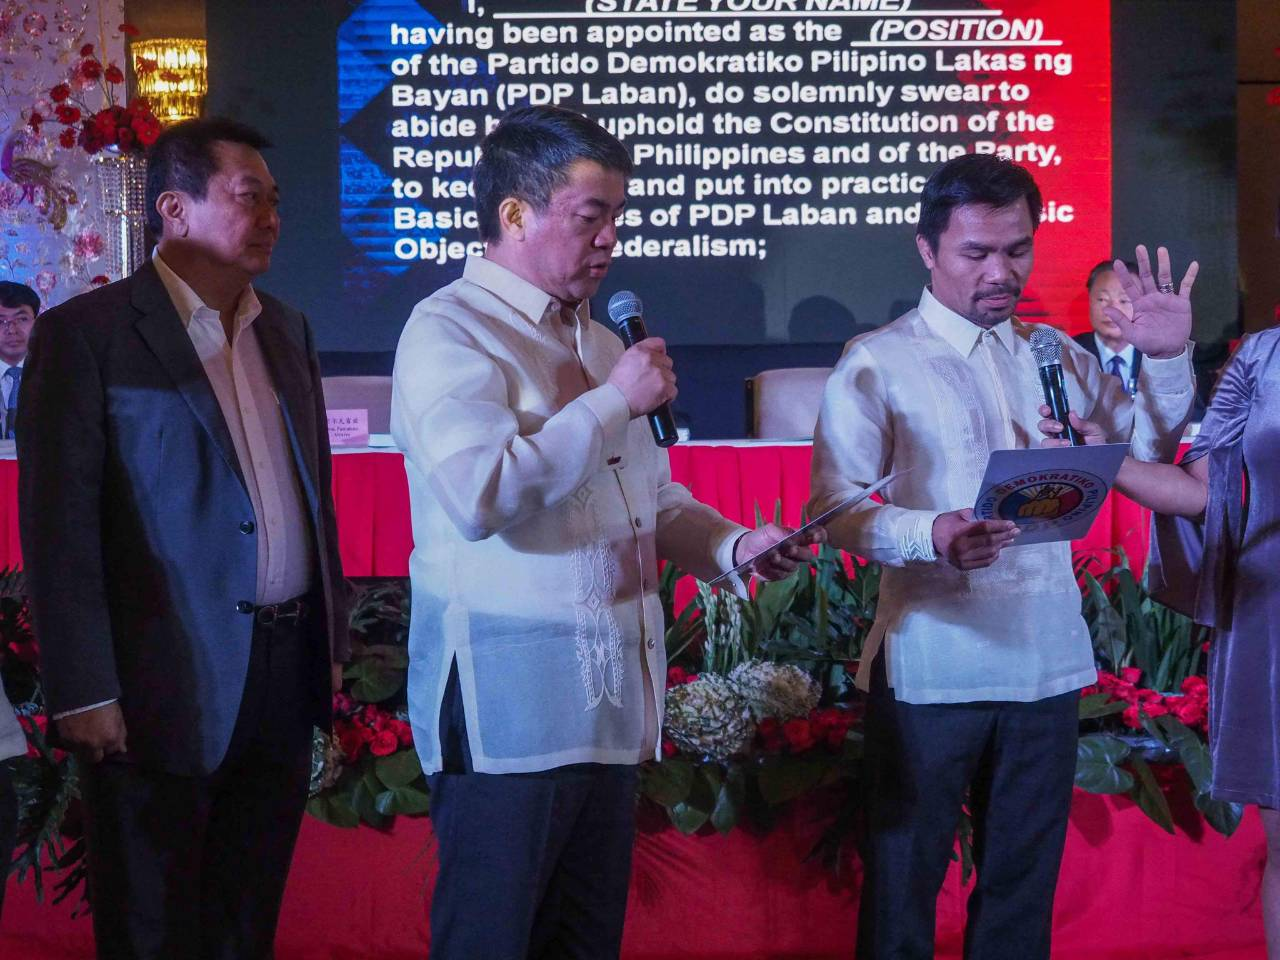 ALLIES. PDP President Koko Pimentel swears in Senator Manny Pacquiao as PDP regional president for Region 12, witnessed by PDP Secretary General Pantaleon Alvarez. Photo courtesy of House of Representatives Media Bureau